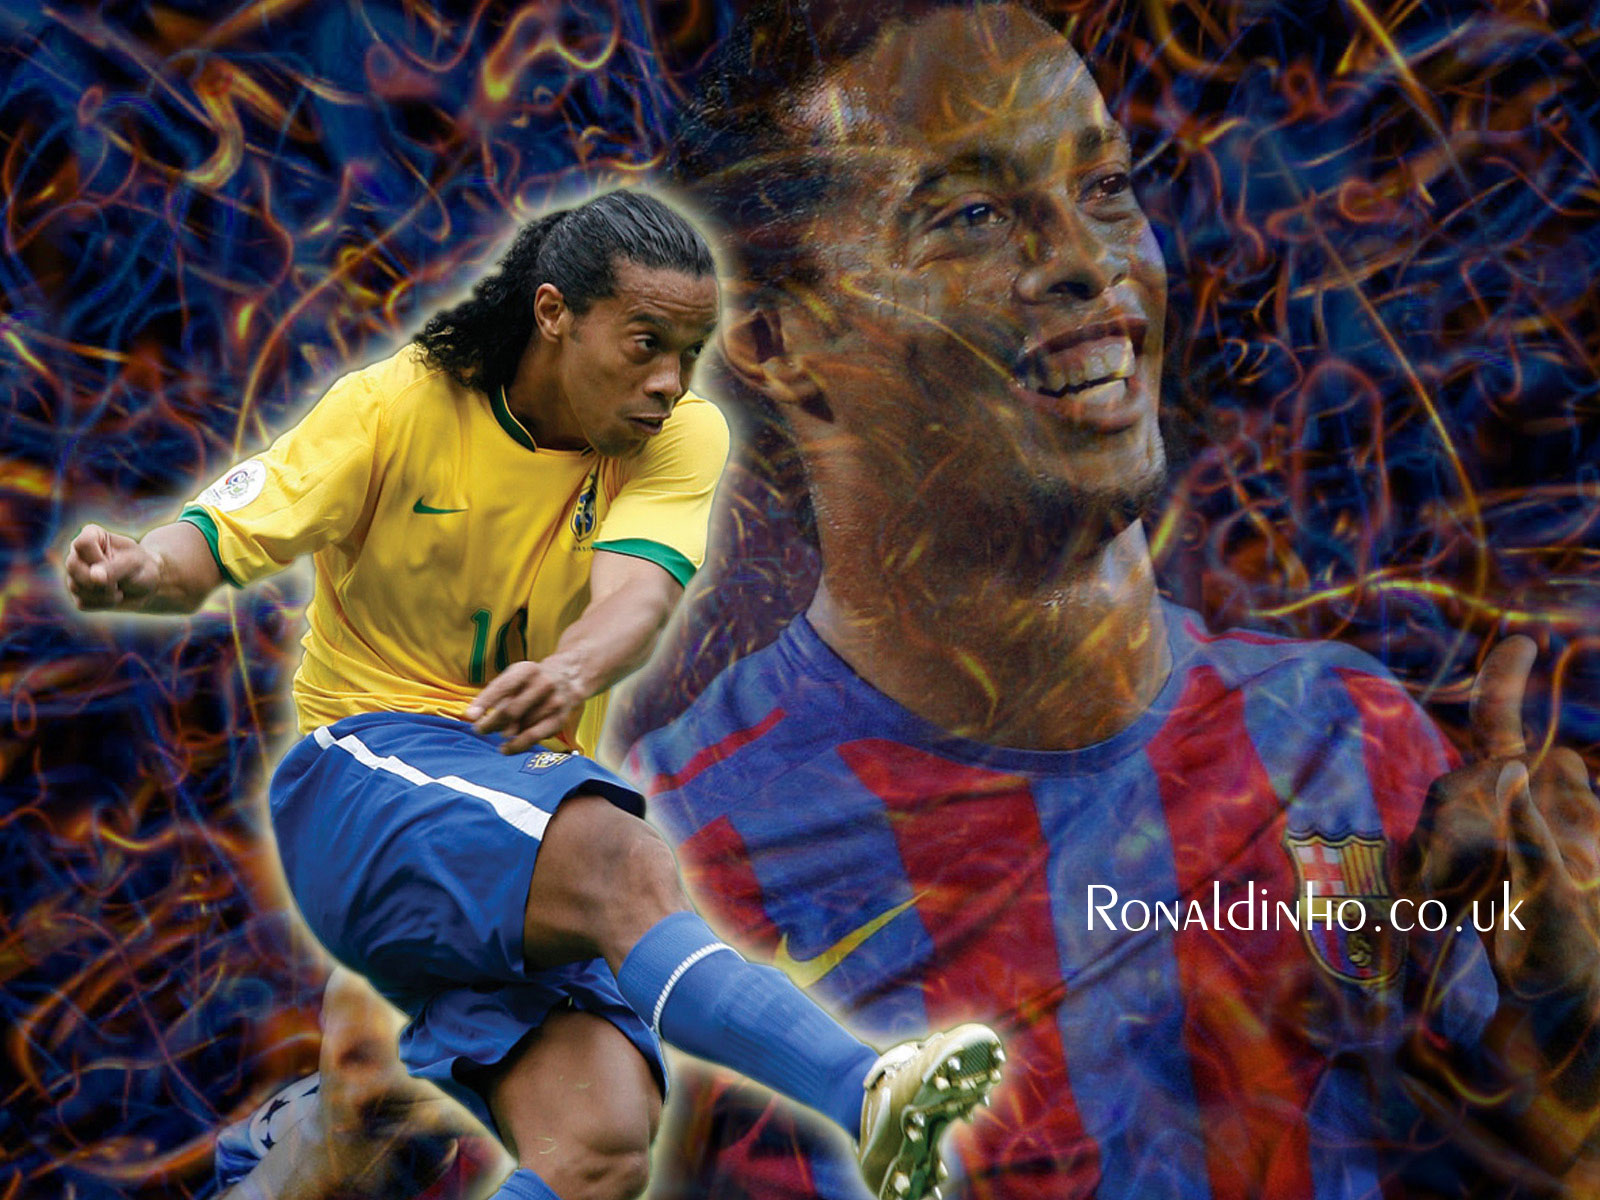 Kings Kisinen Ronaldinho Hd Wallpapers 2012